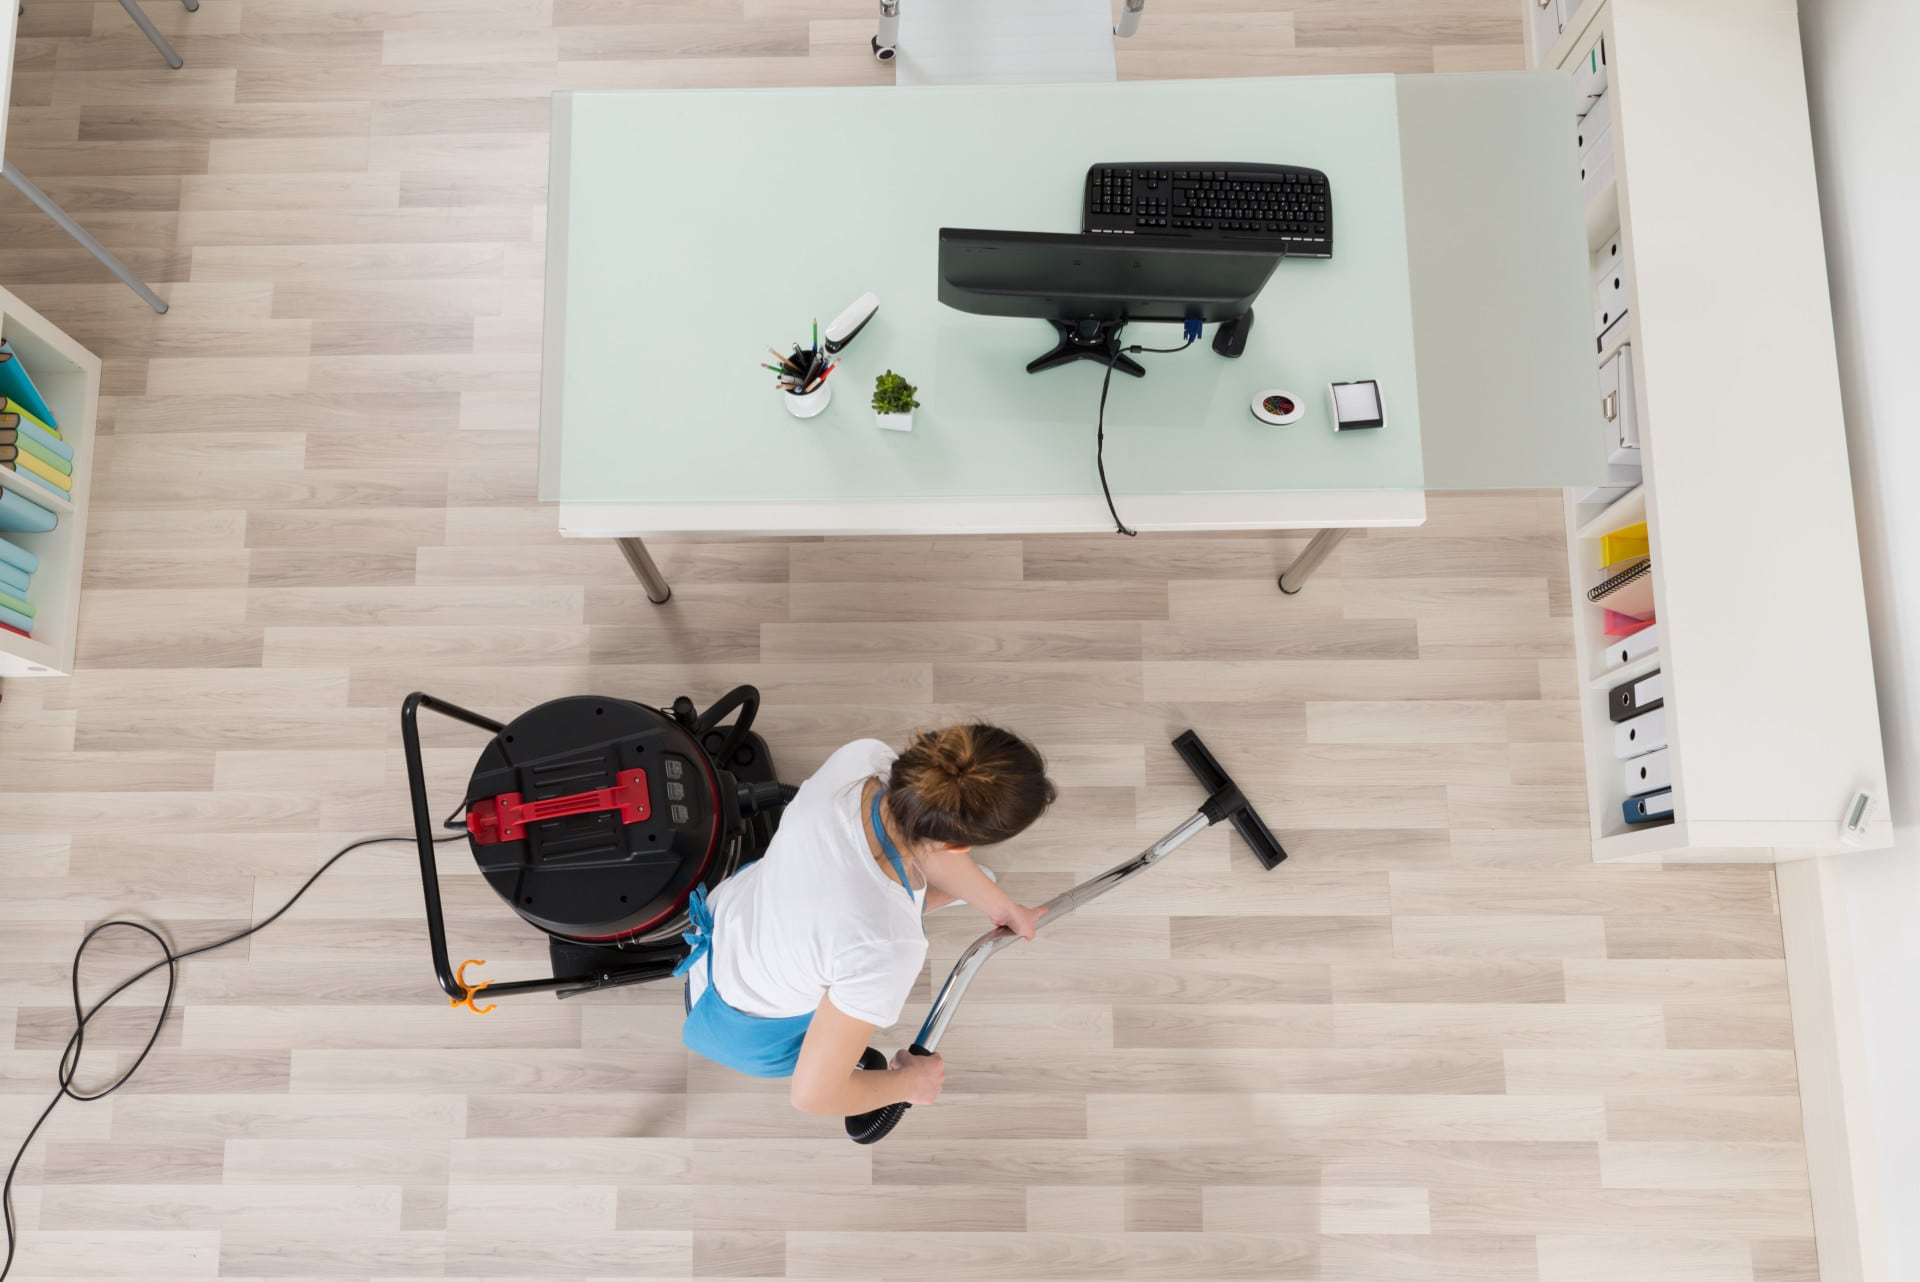 A woman vacuuming under an office during commercial cleaning services